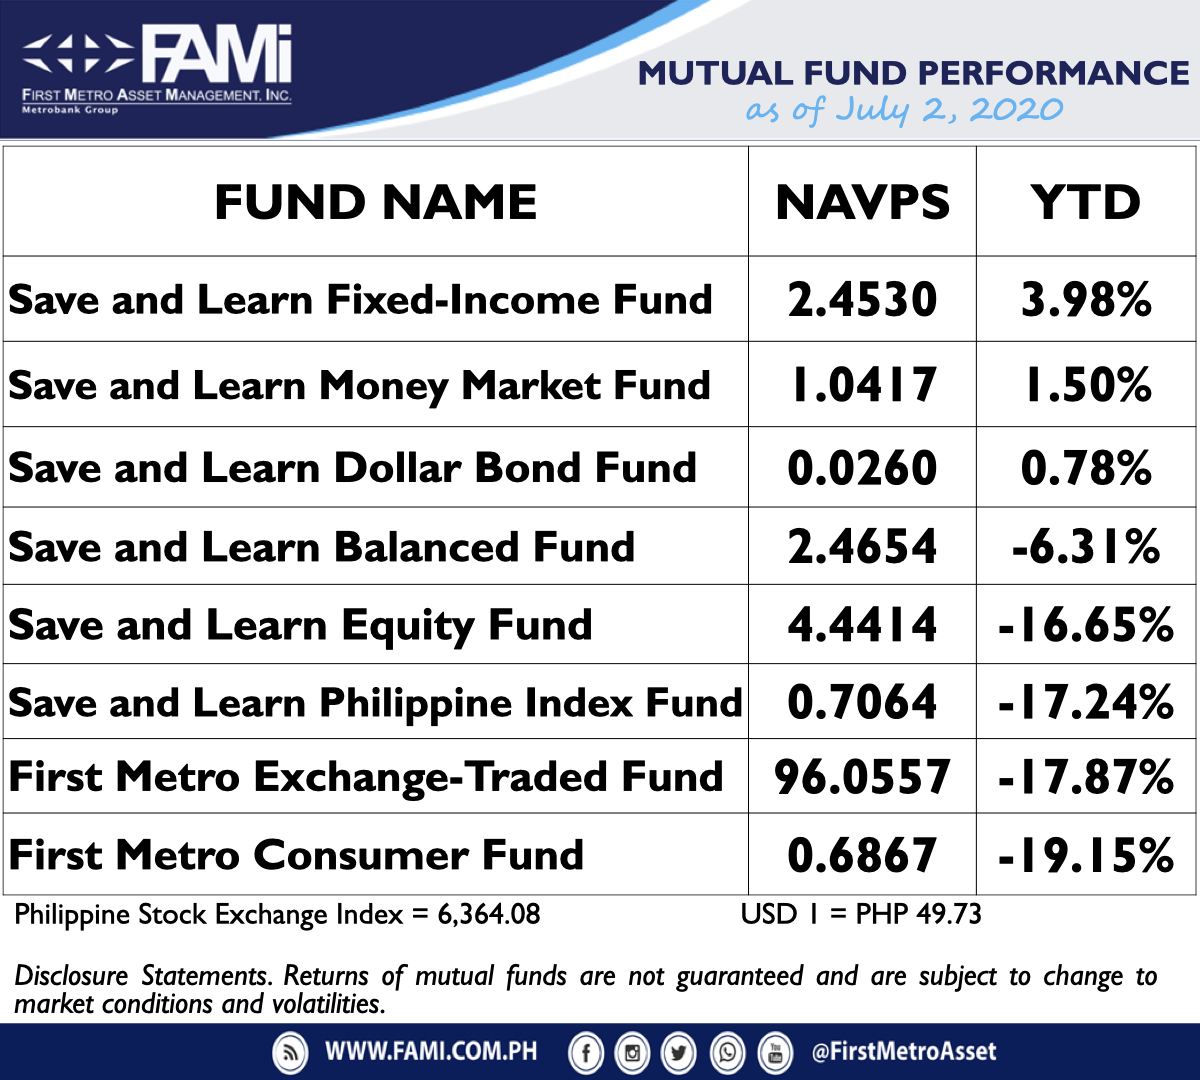 Here are our First Metro Asset Funds NAVPS as of July 2, 2020  #choosetoinvest #choosewisely #chooseFAMI https://t.co/FN41hmlWwQ